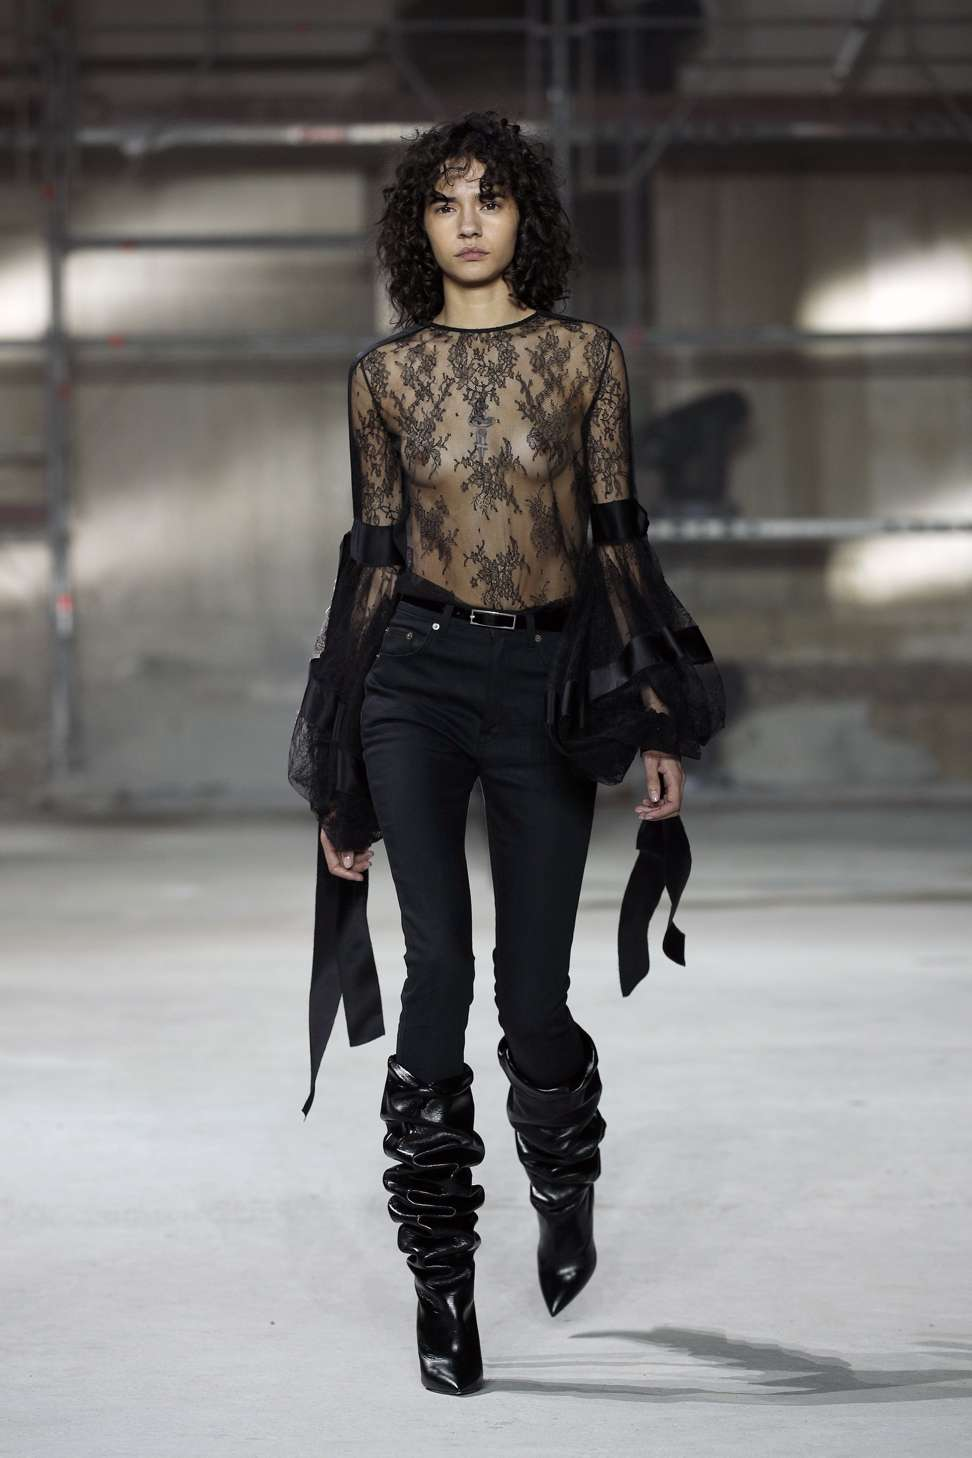 Anthony Vaccarello S Dark Romantic Collection Lauds Saint Laurent Founder At Paris Fashion Week